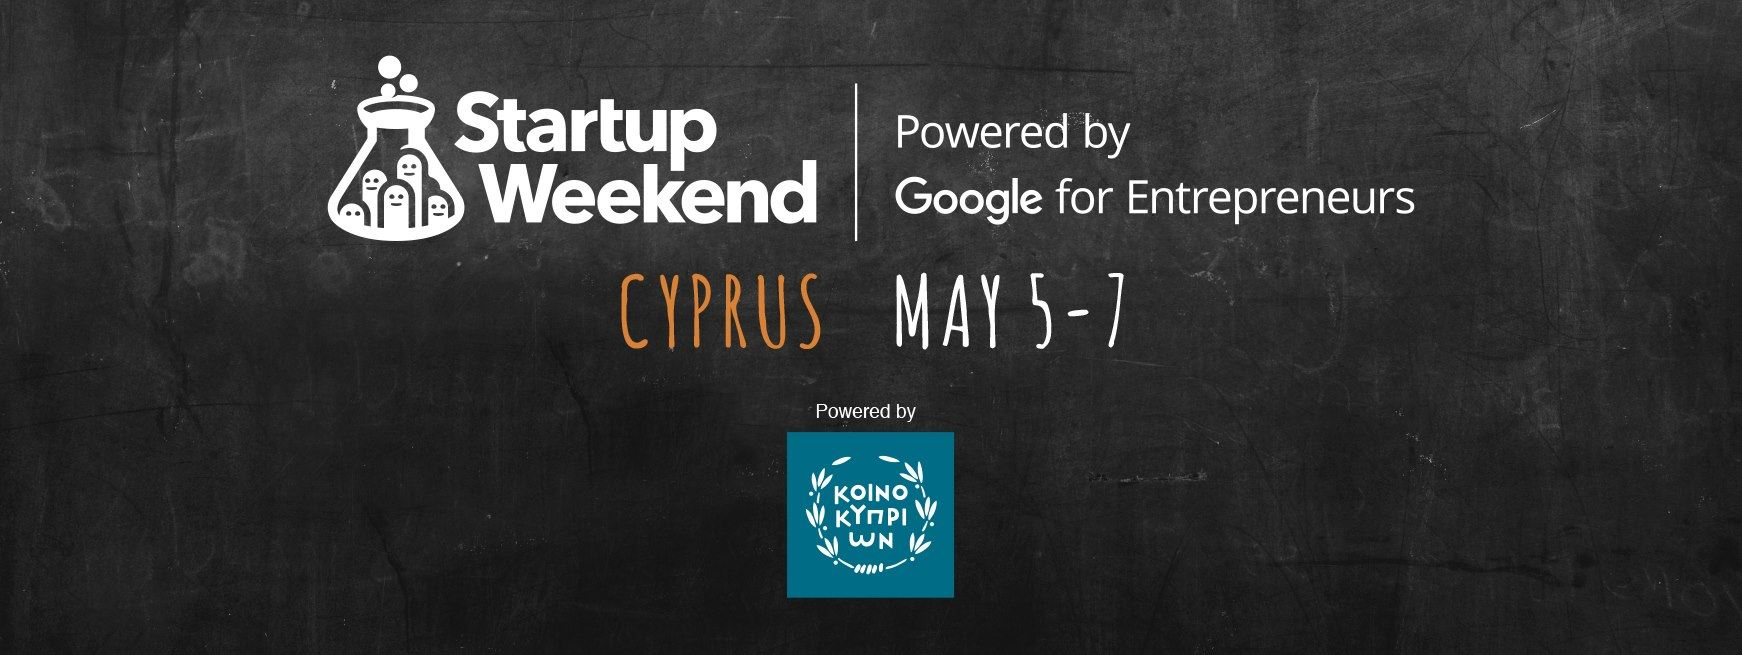 Startup Weekend Cyprus 2017 cyprusinno event events